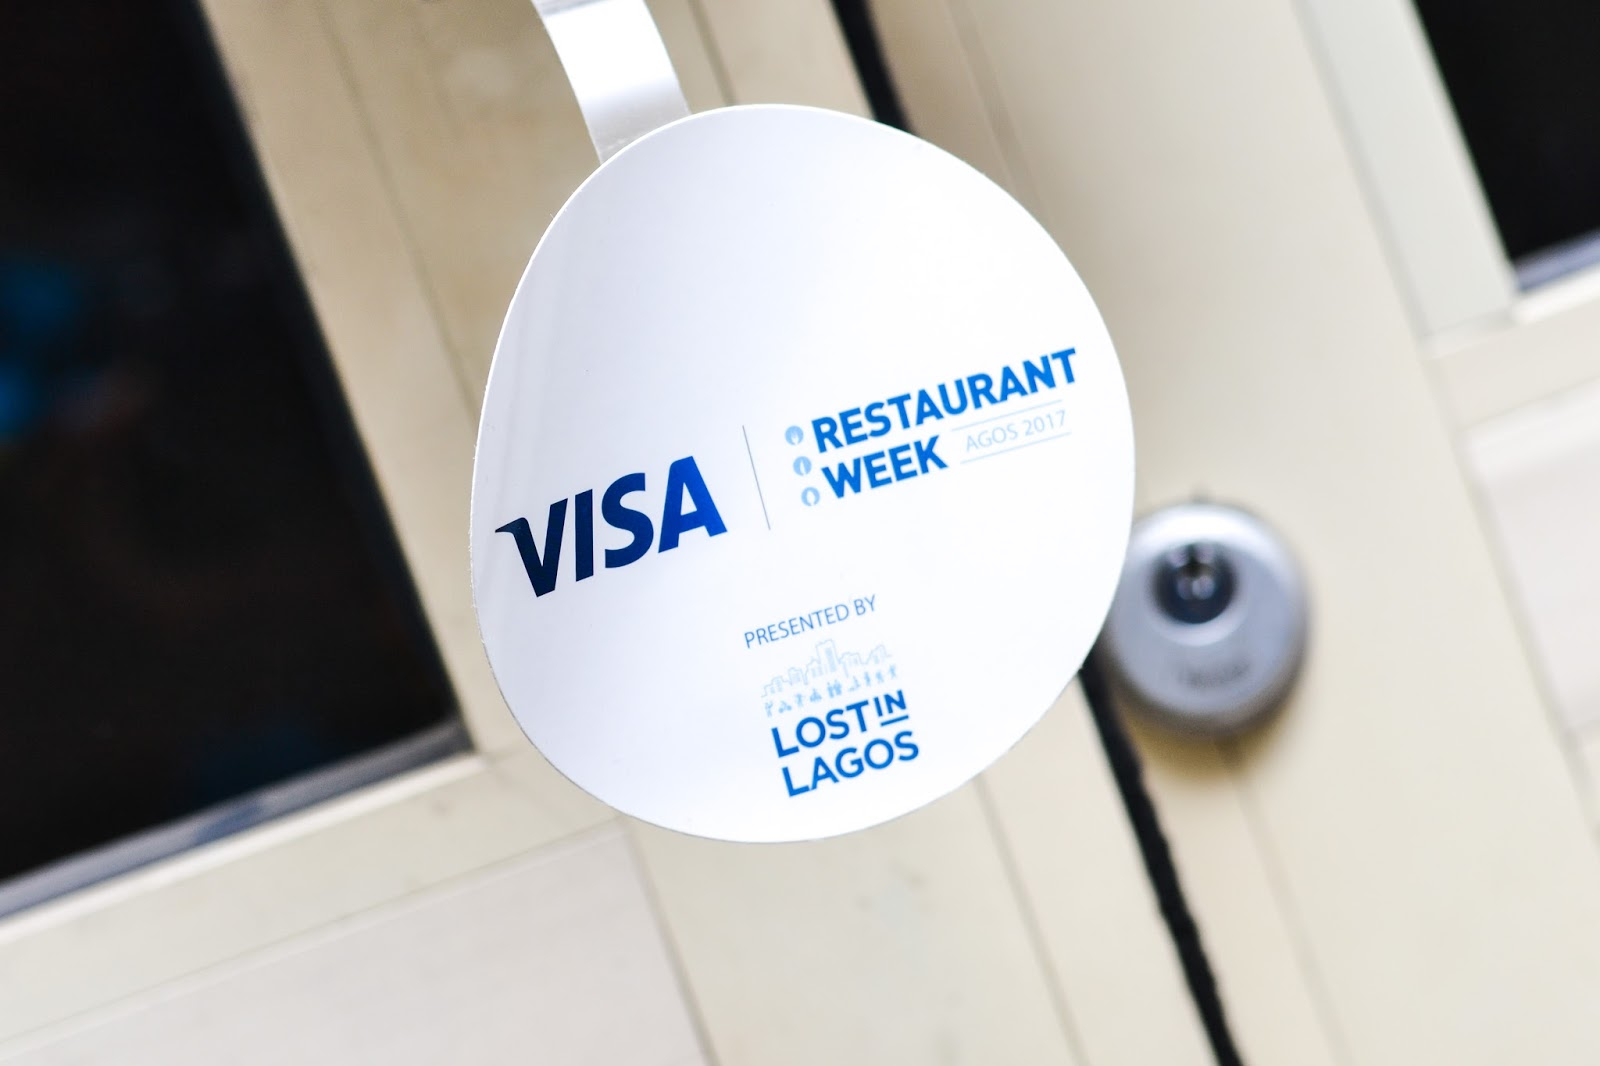 Visa Restaurant Week 2017